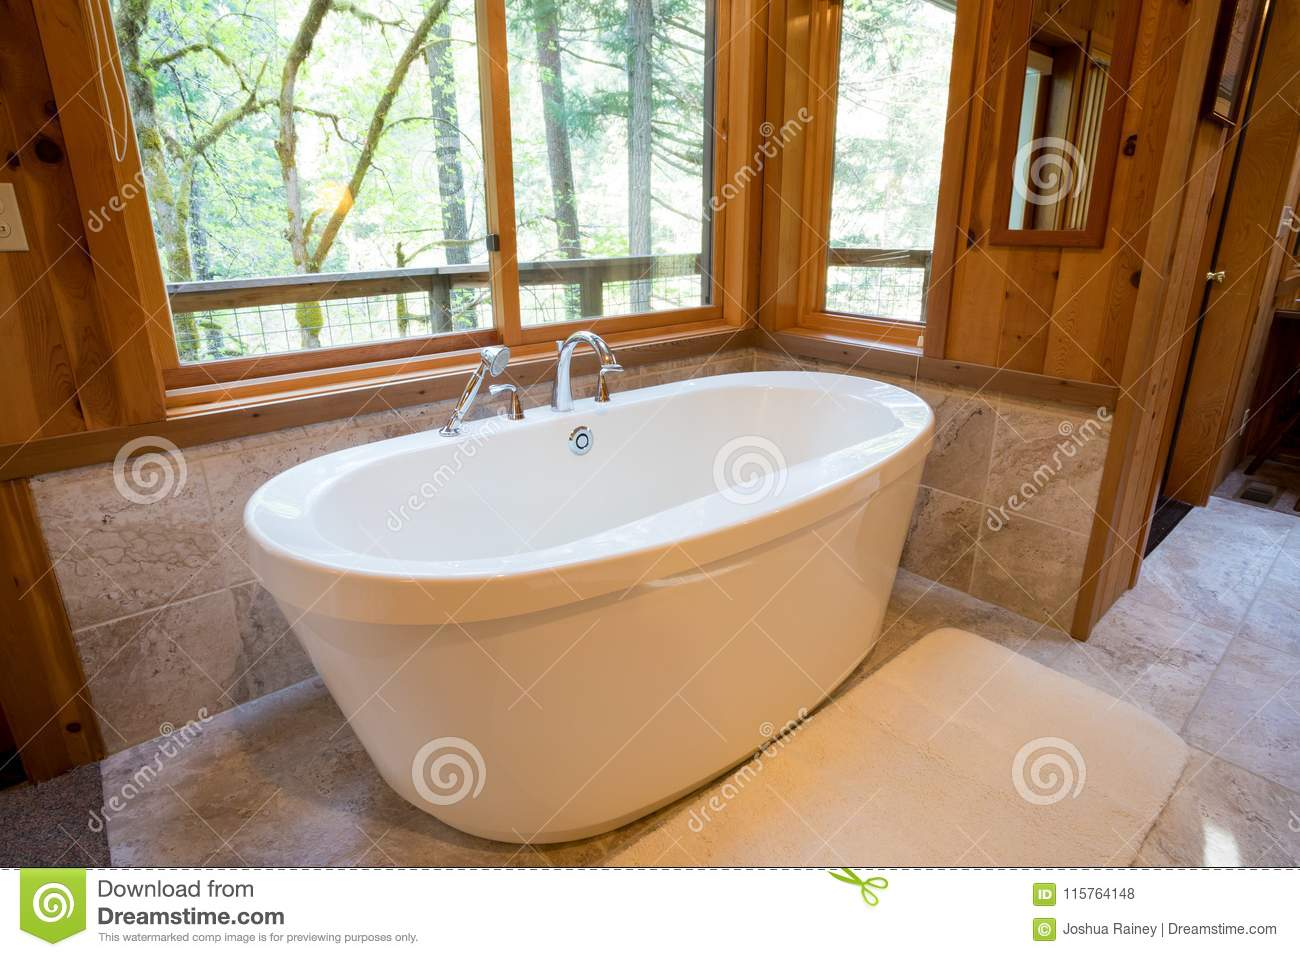 Soaking Bath Tub in Cabin stock photo. Image of bathtubs - 115764148